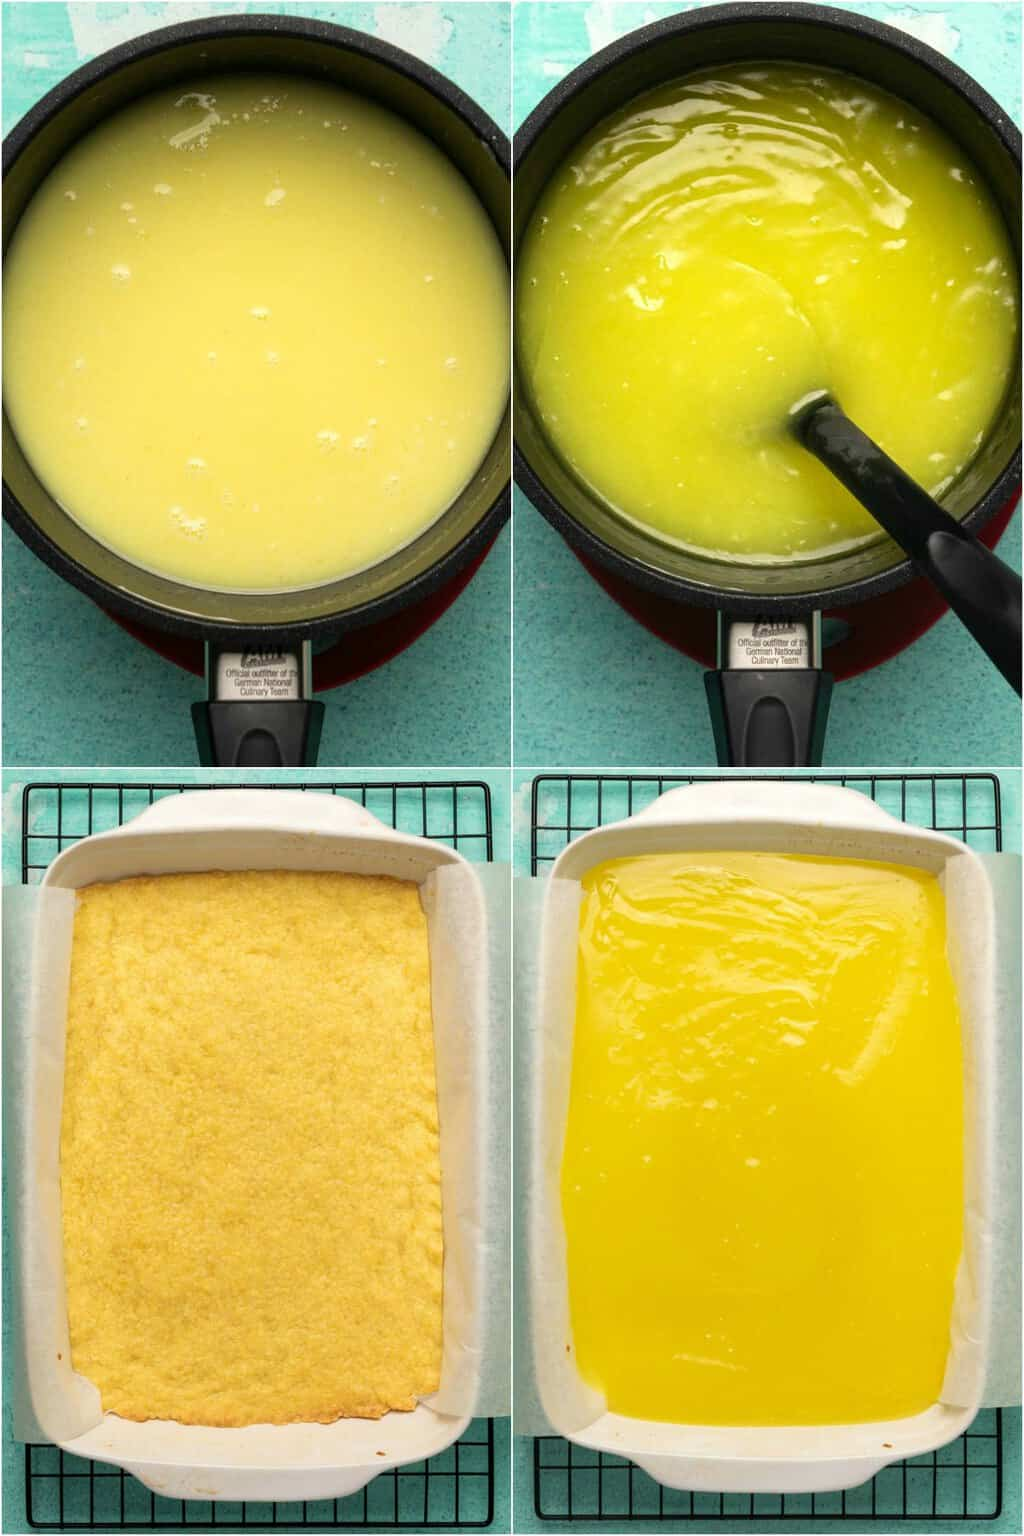 Step by step process photo collage of making vegan lemon bars.